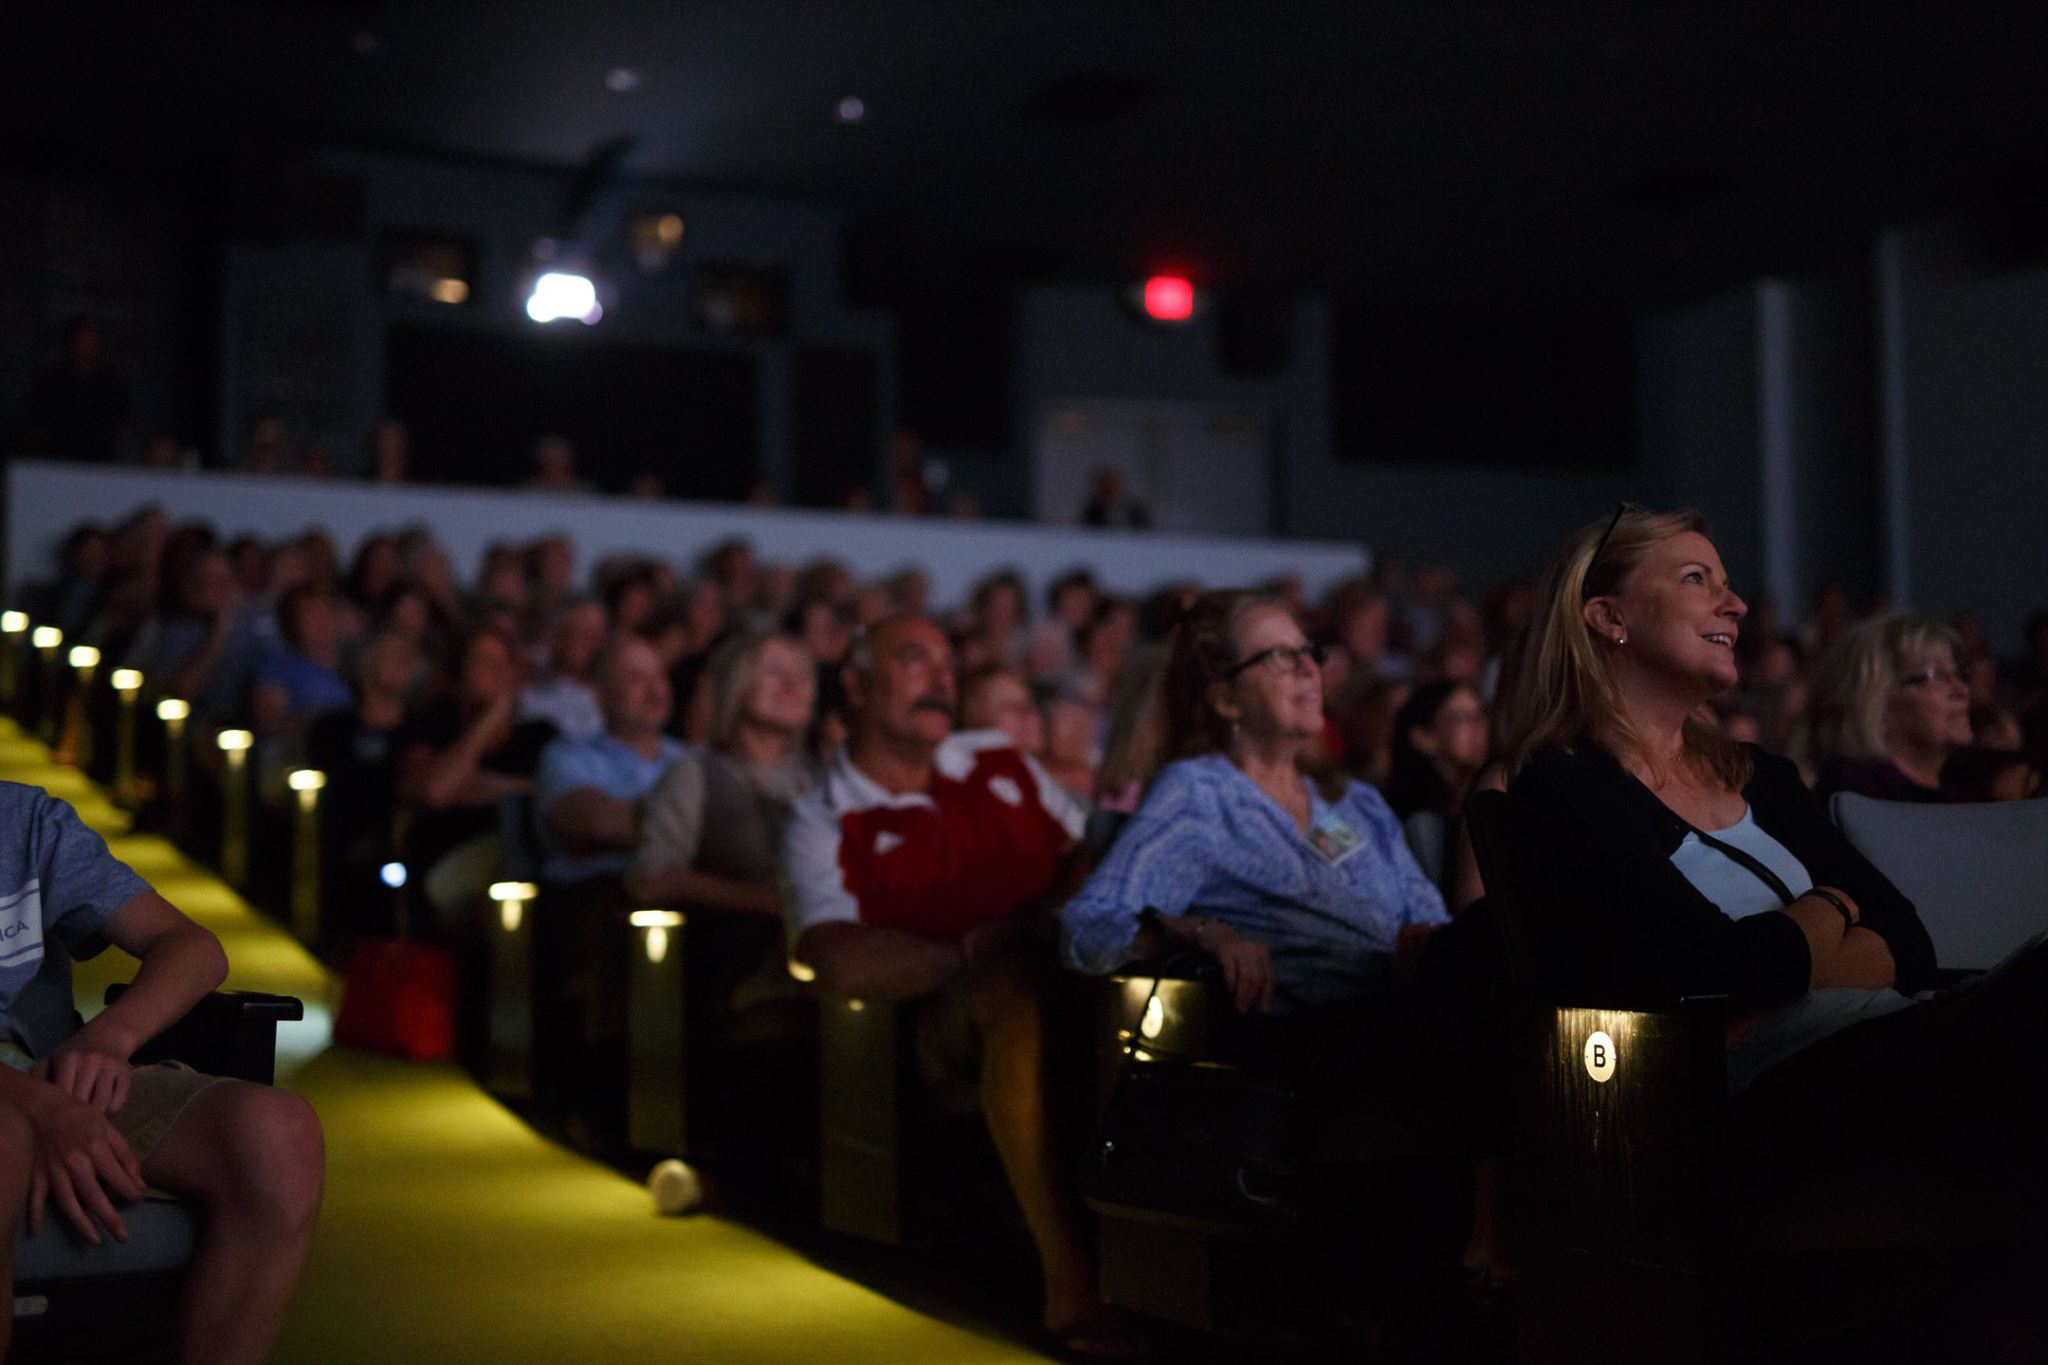 An audience enjoys a movie in a darkened theater.